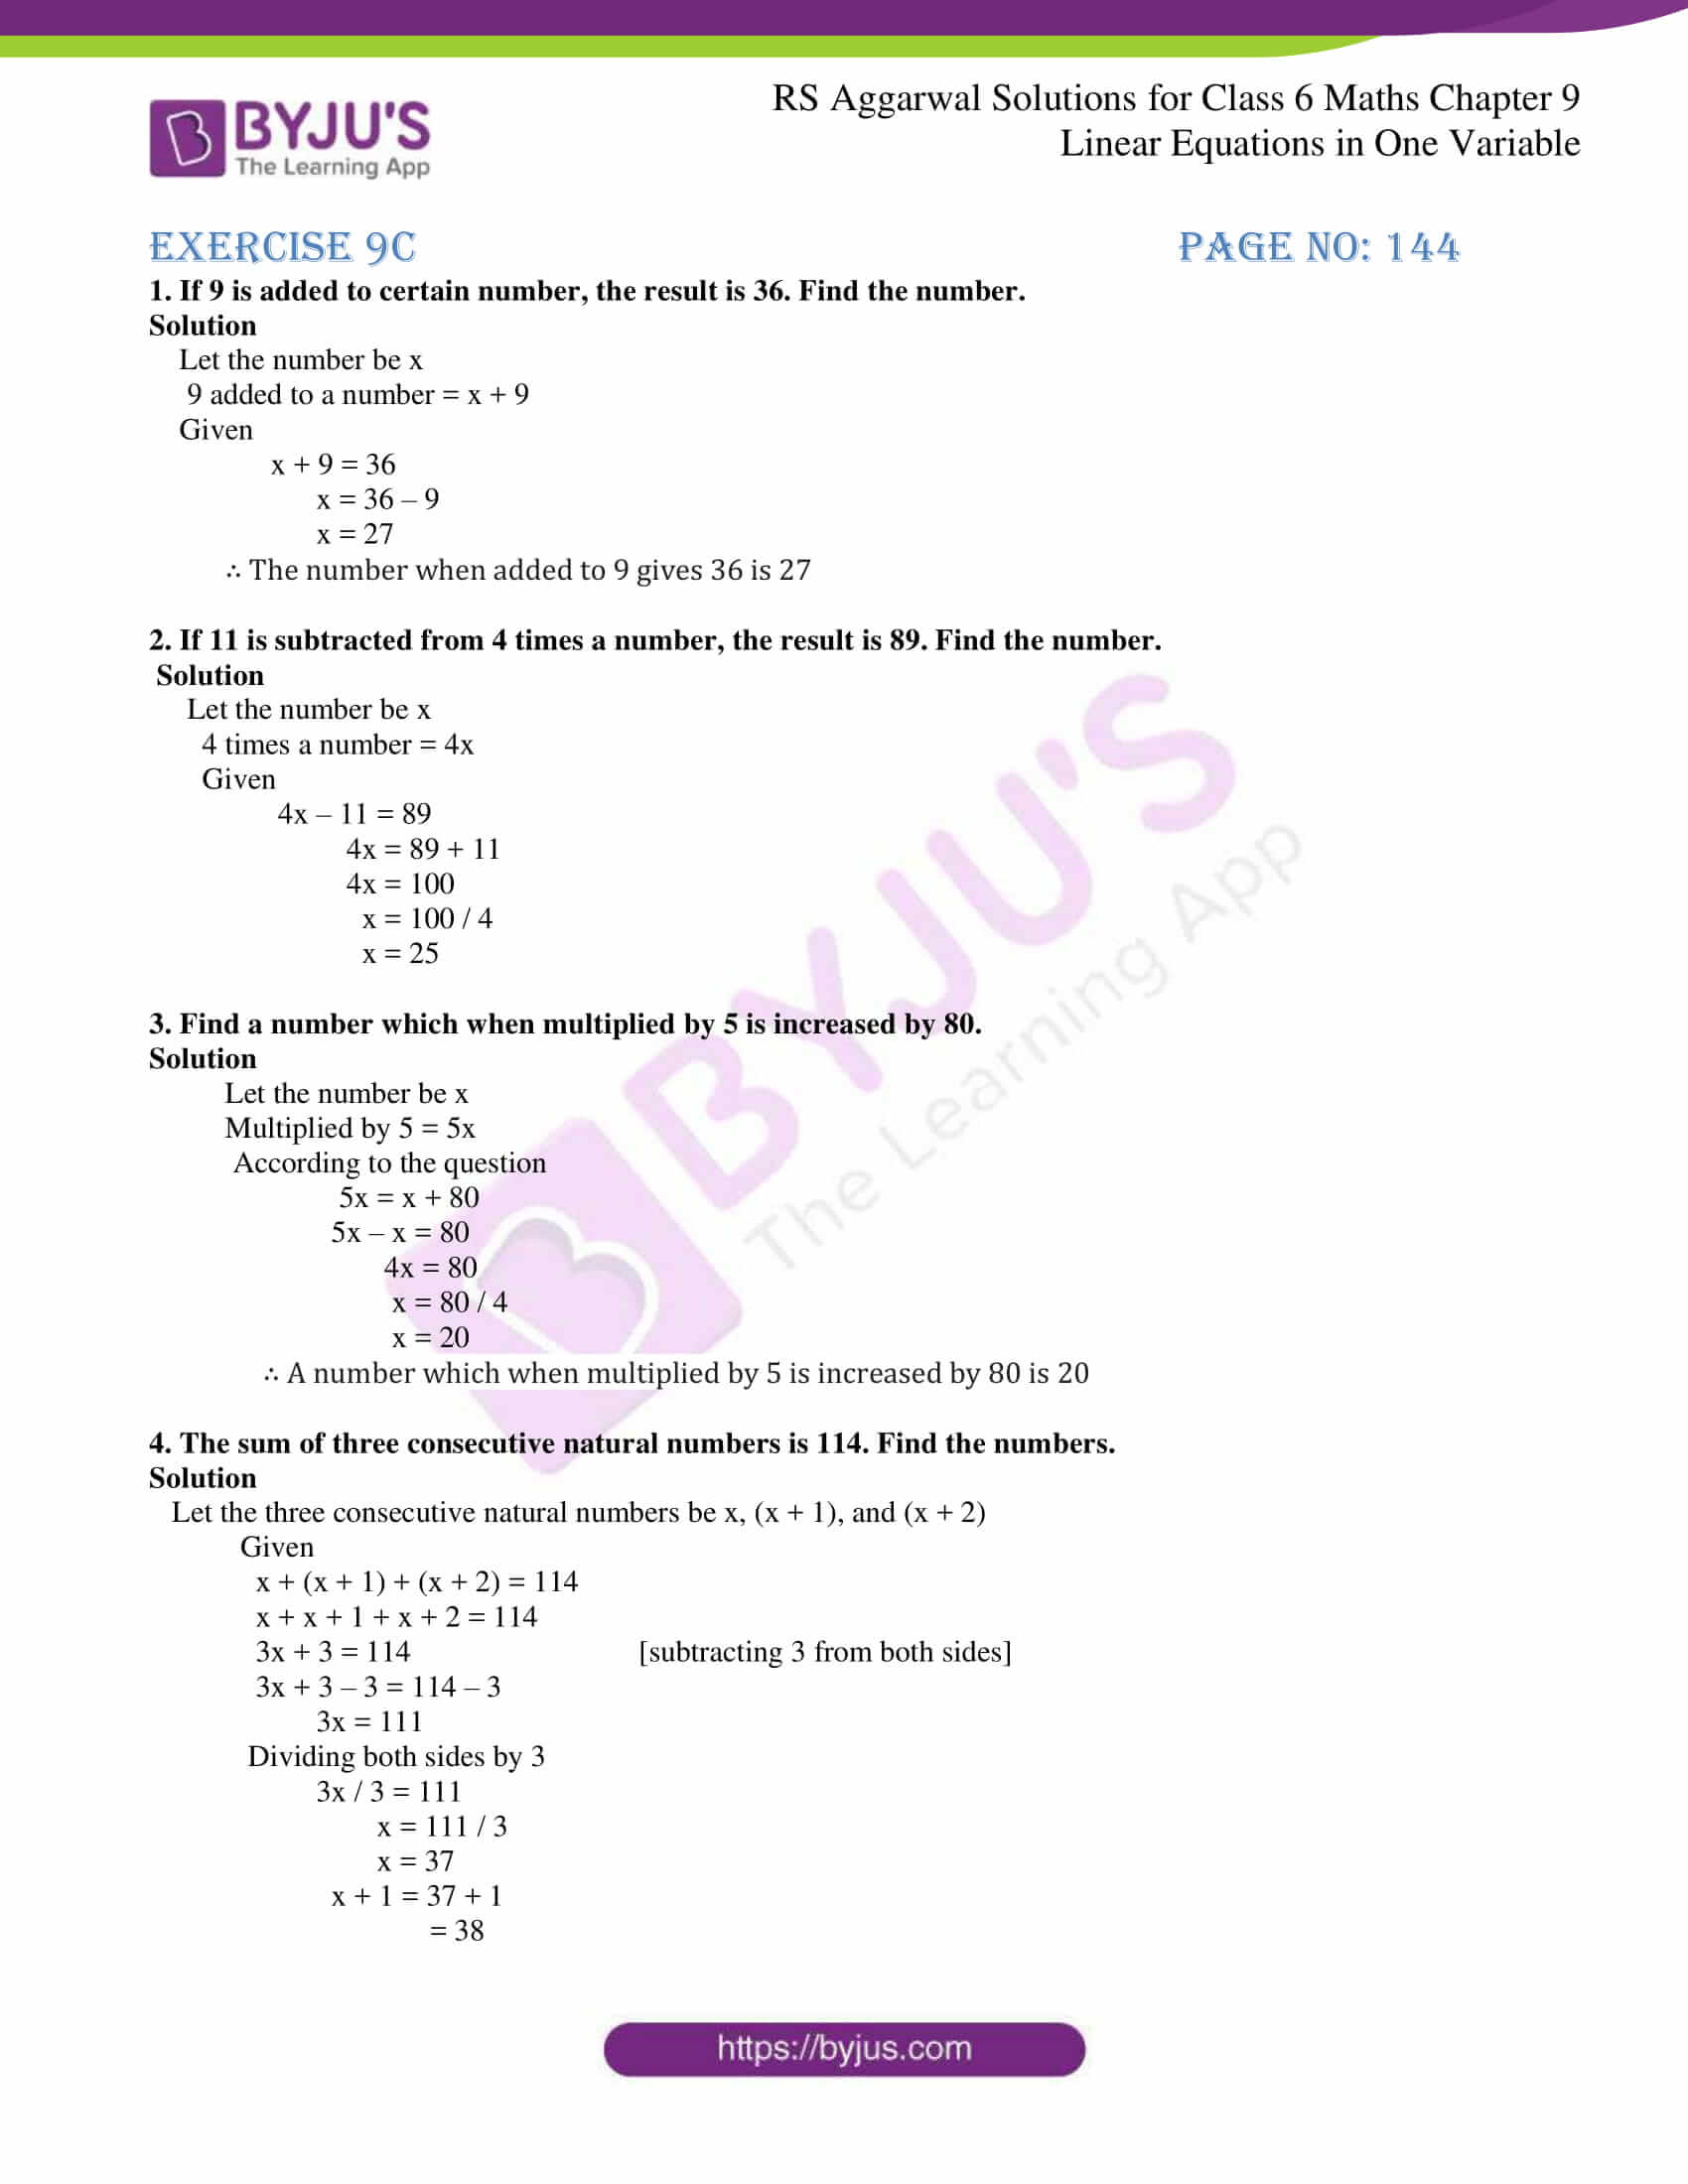 rs aggarwal solution class 6 maths chapter 9